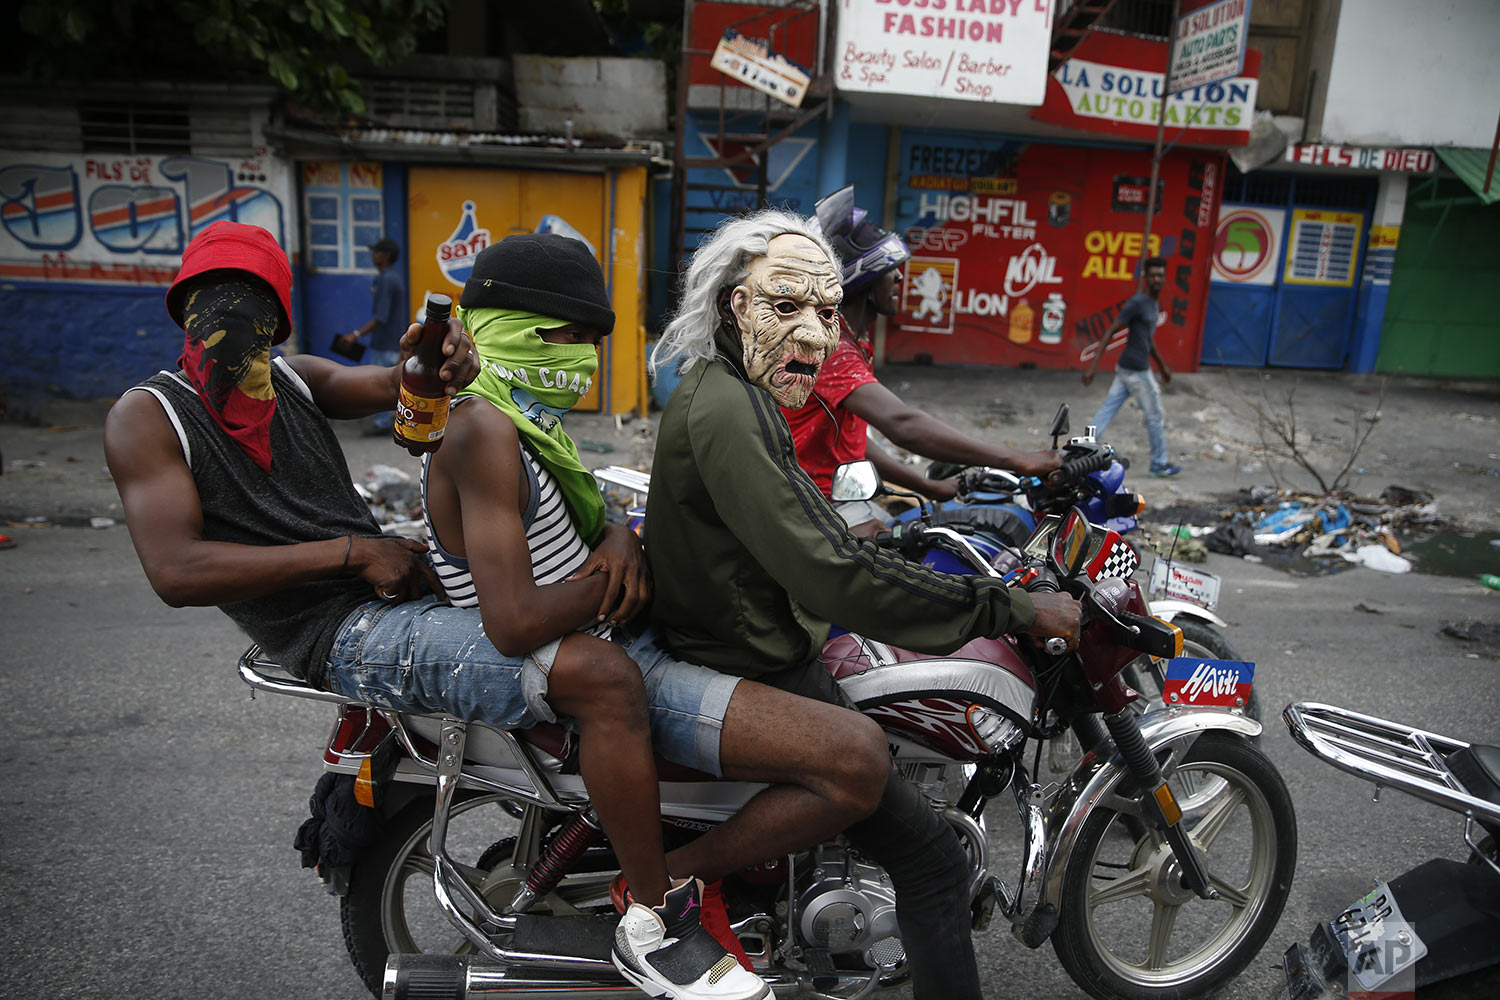 Masked protestors ride a motorcycle in Port-au-Prince, Haiti, Monday, Sept. 30, 2019. Demonstrators set fires Monday and chanted calls for Haiti's President Jovenel Moise to resign, the latest in a series of protests aimed at pushing Moise from office. (AP Photo/Rebecca Blackwell)